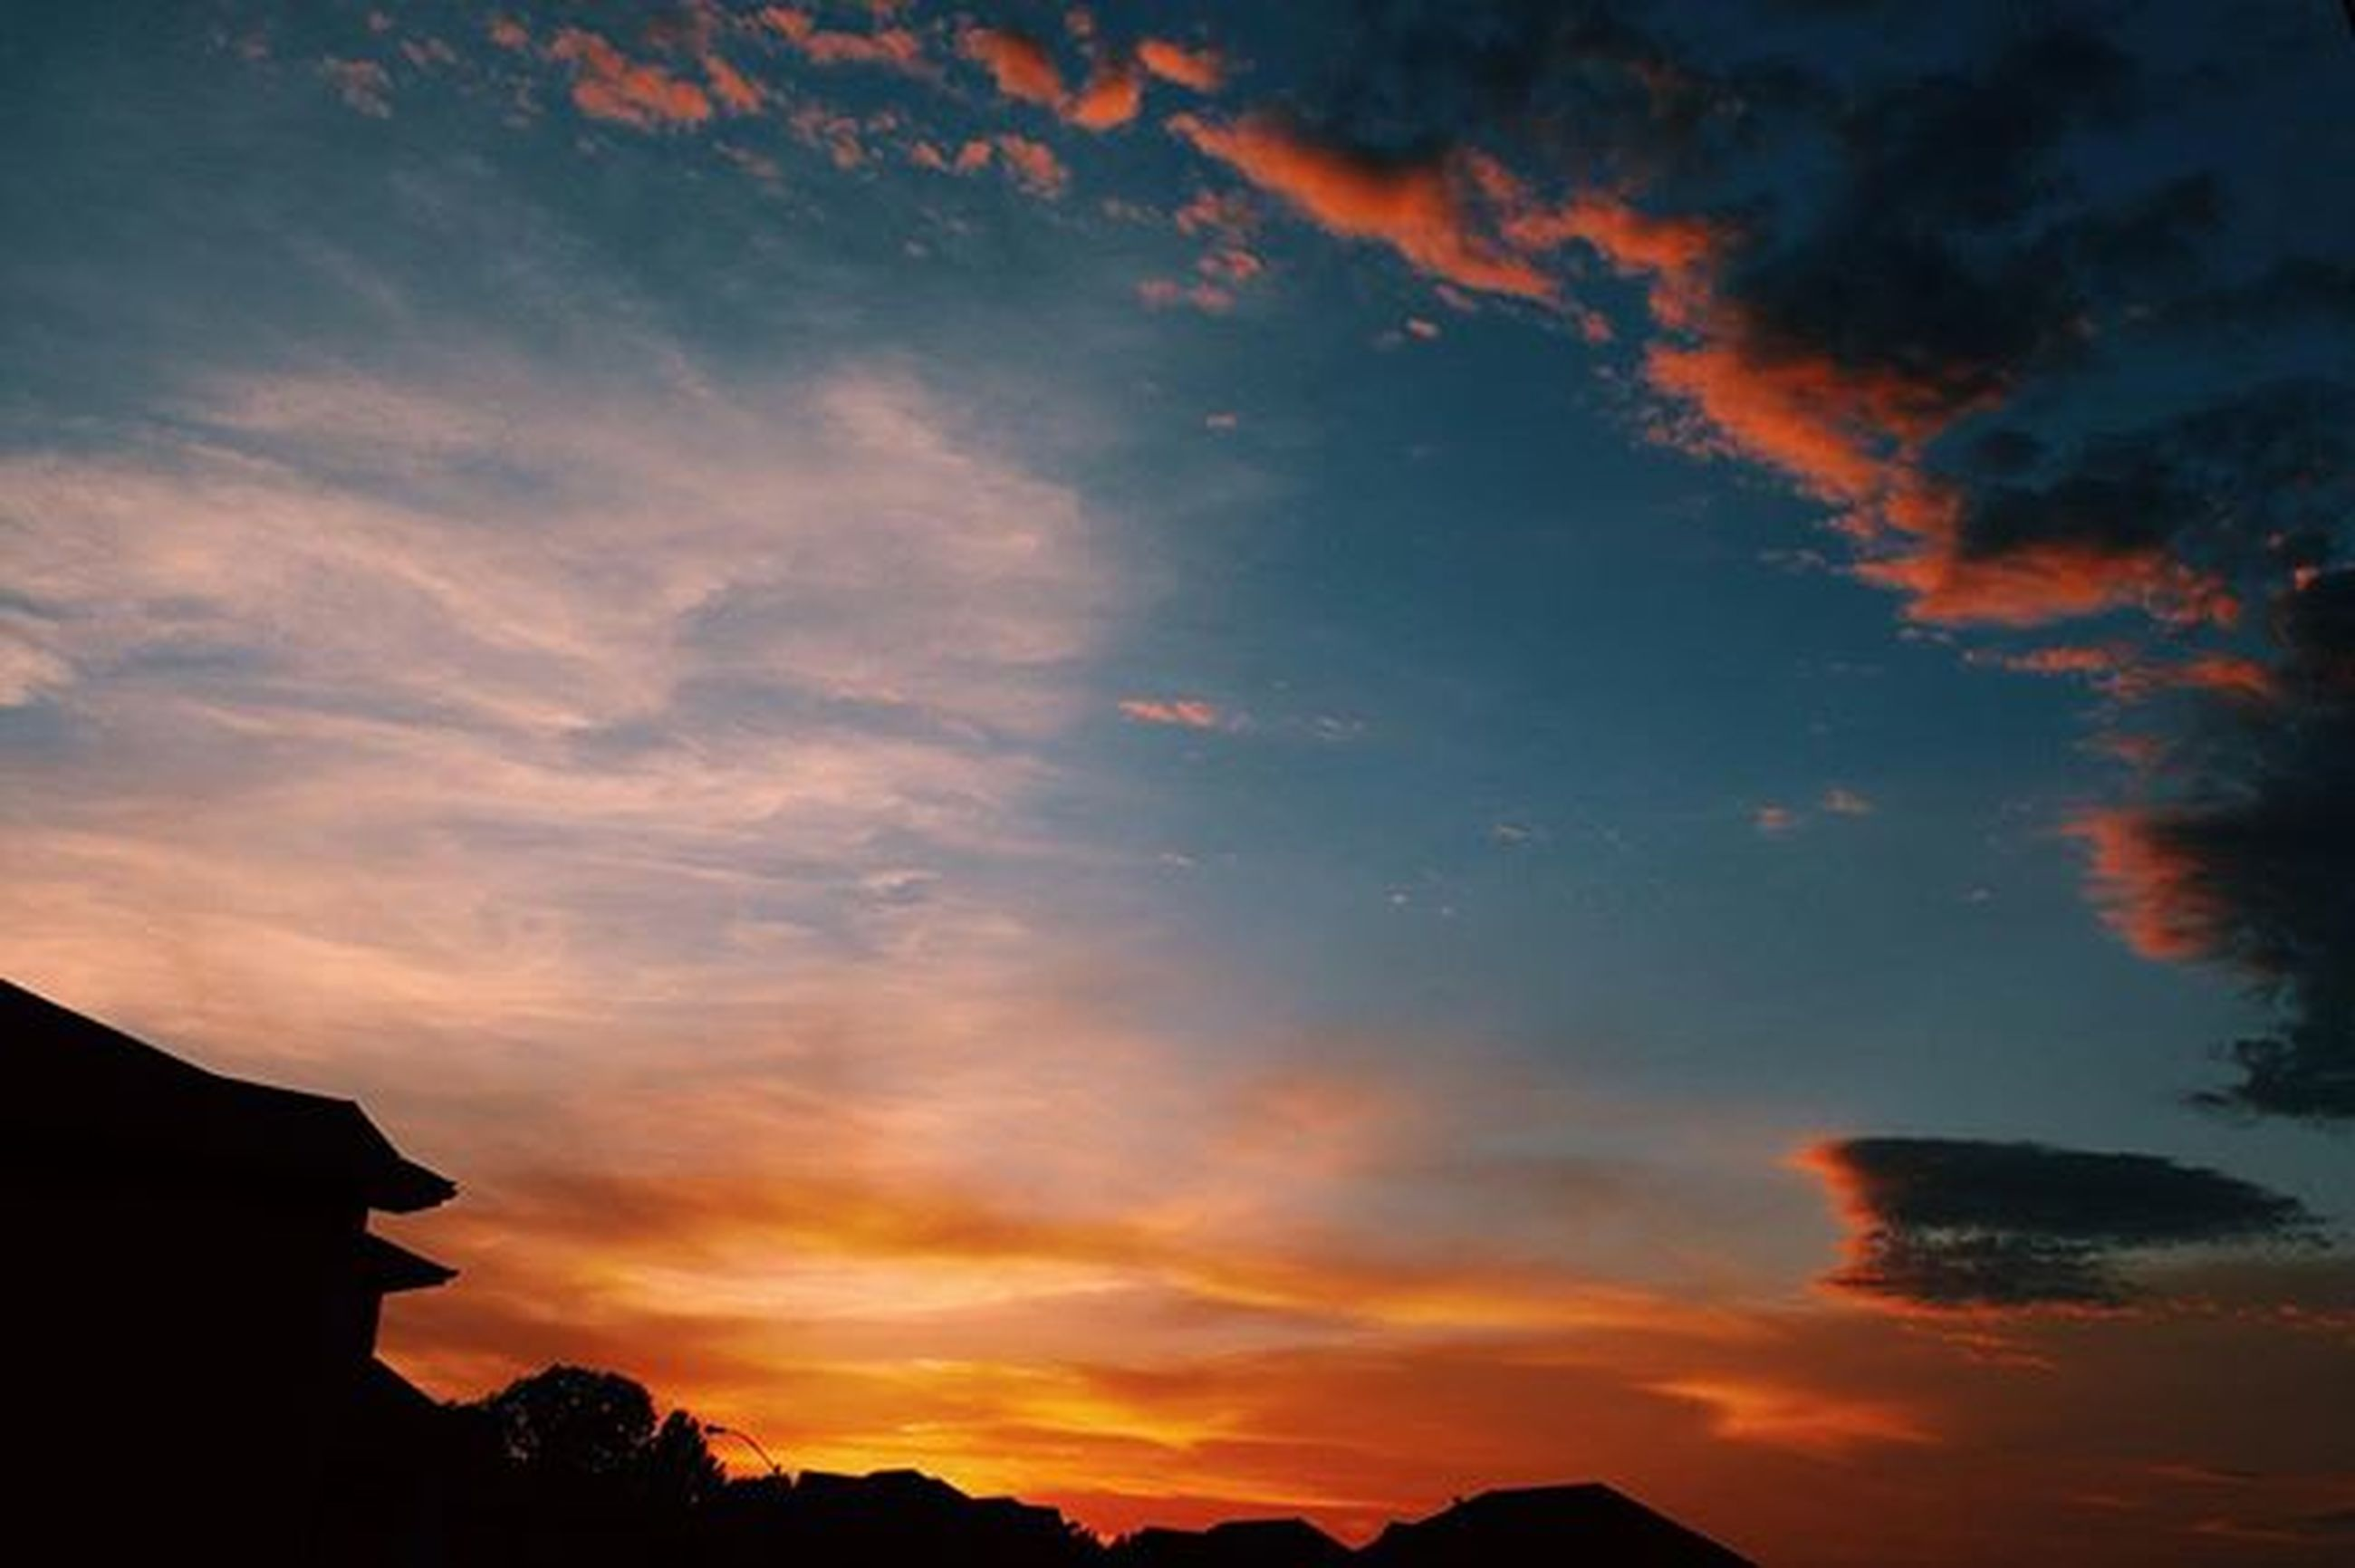 sunset, sky, silhouette, orange color, cloud - sky, beauty in nature, scenics, dramatic sky, tranquil scene, tranquility, nature, cloud, cloudy, low angle view, idyllic, building exterior, moody sky, majestic, weather, built structure